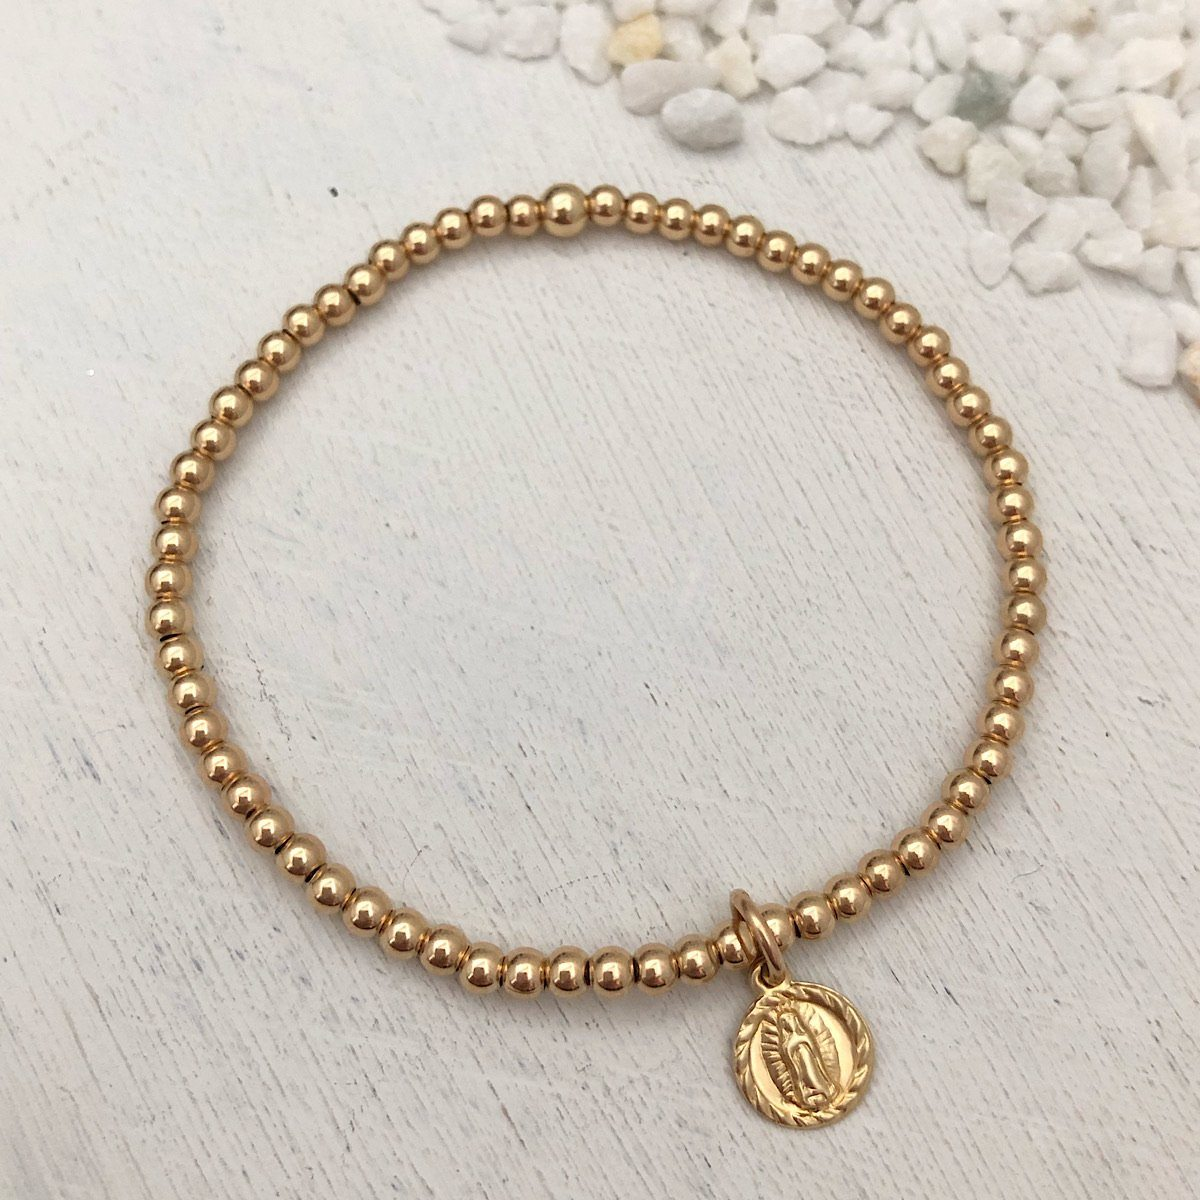 Tiny Virgin Mary Bead Bracelet Gold Fill